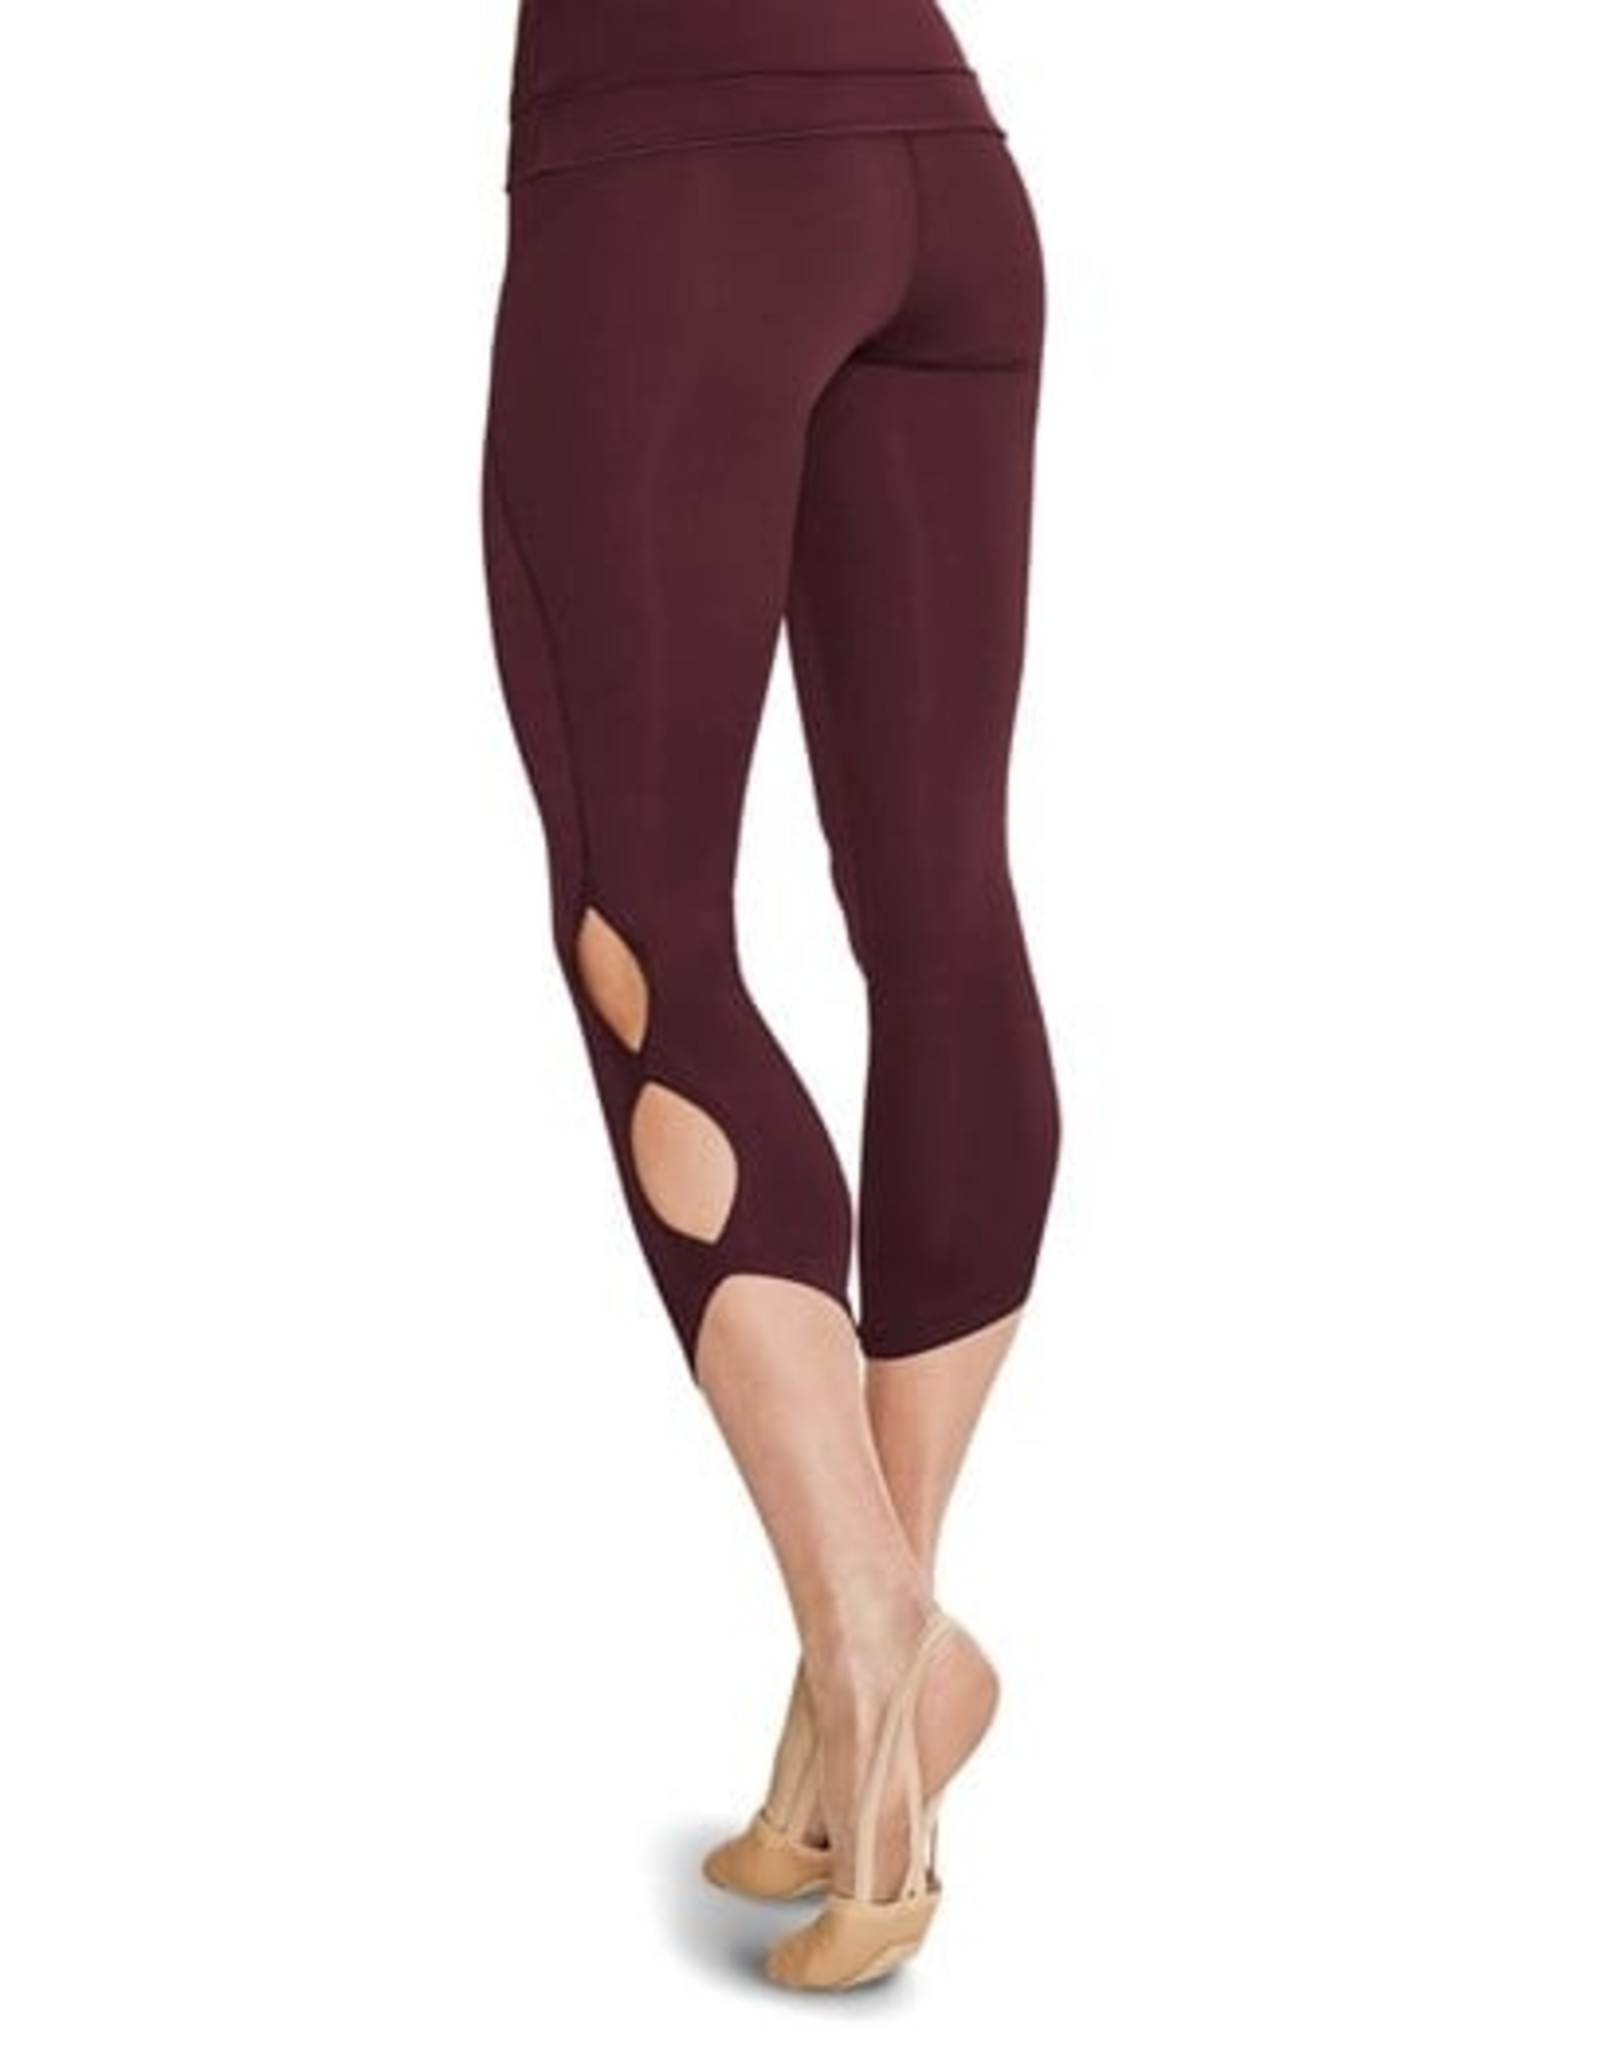 BLOCH FOLIE CAPRI LEGGING